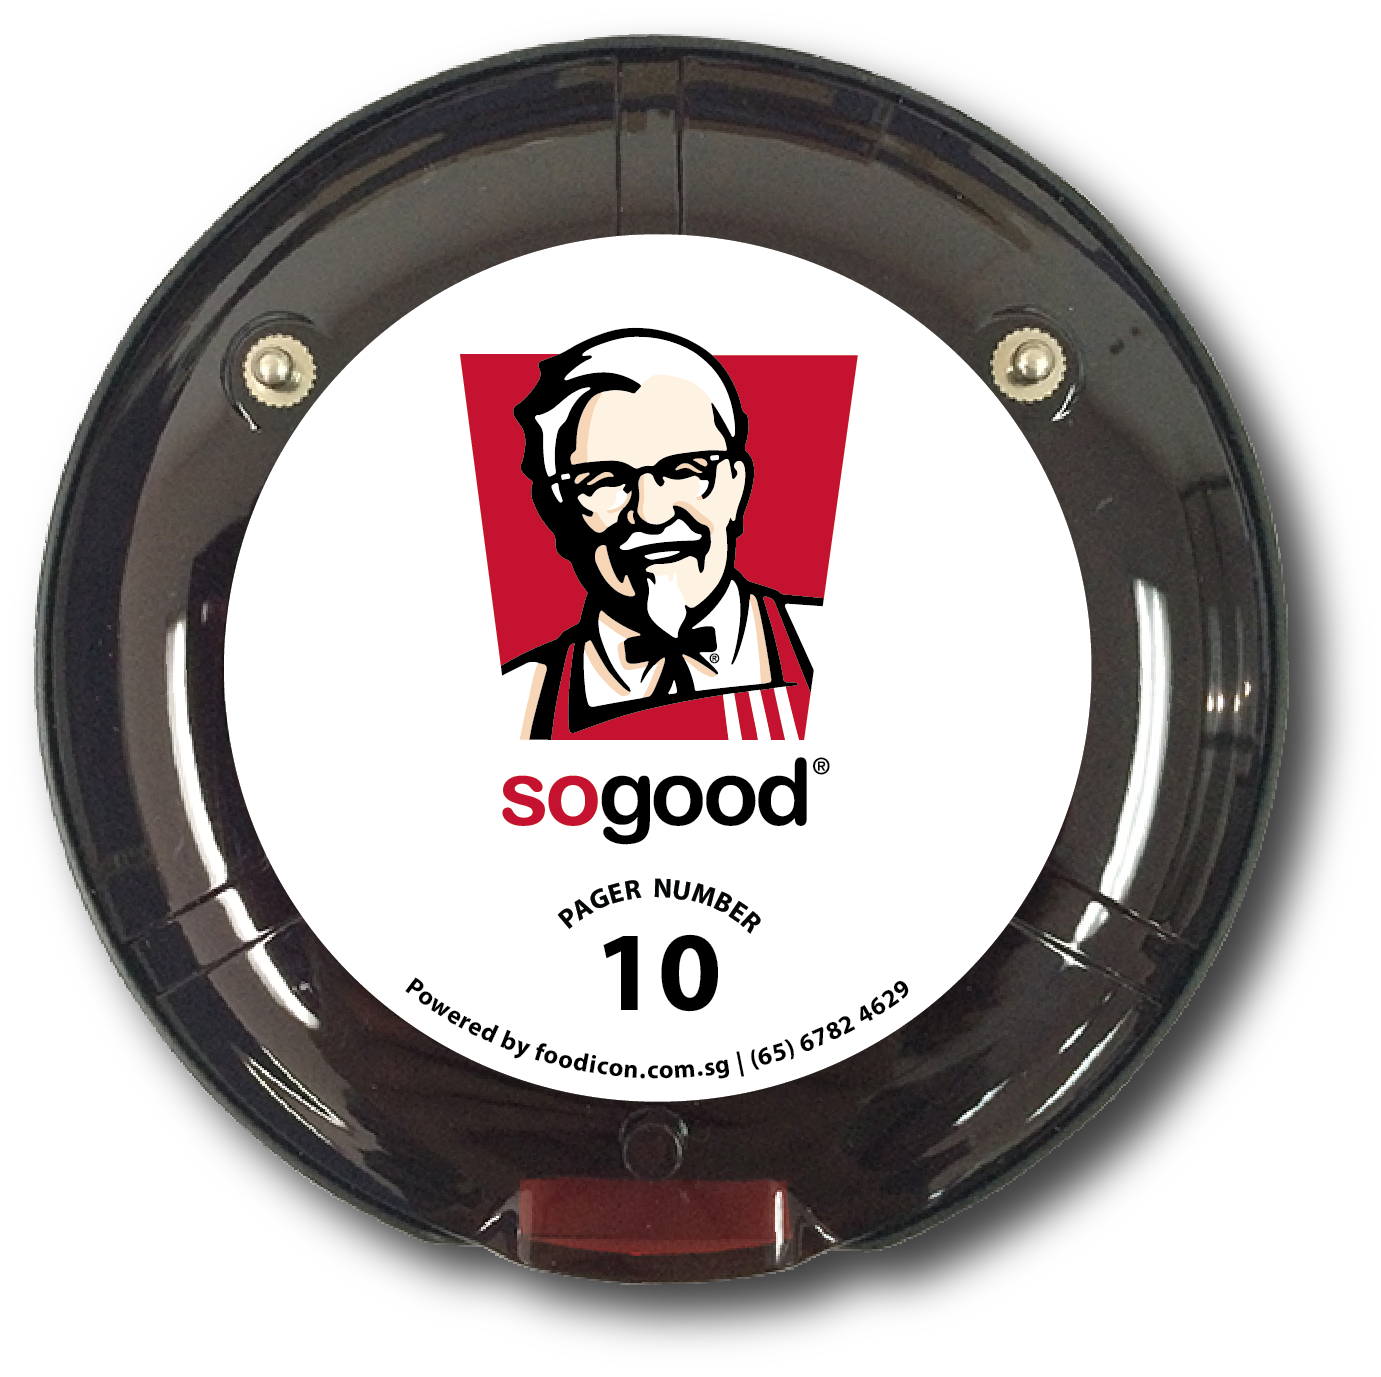 Food Icon Paging System - KFC